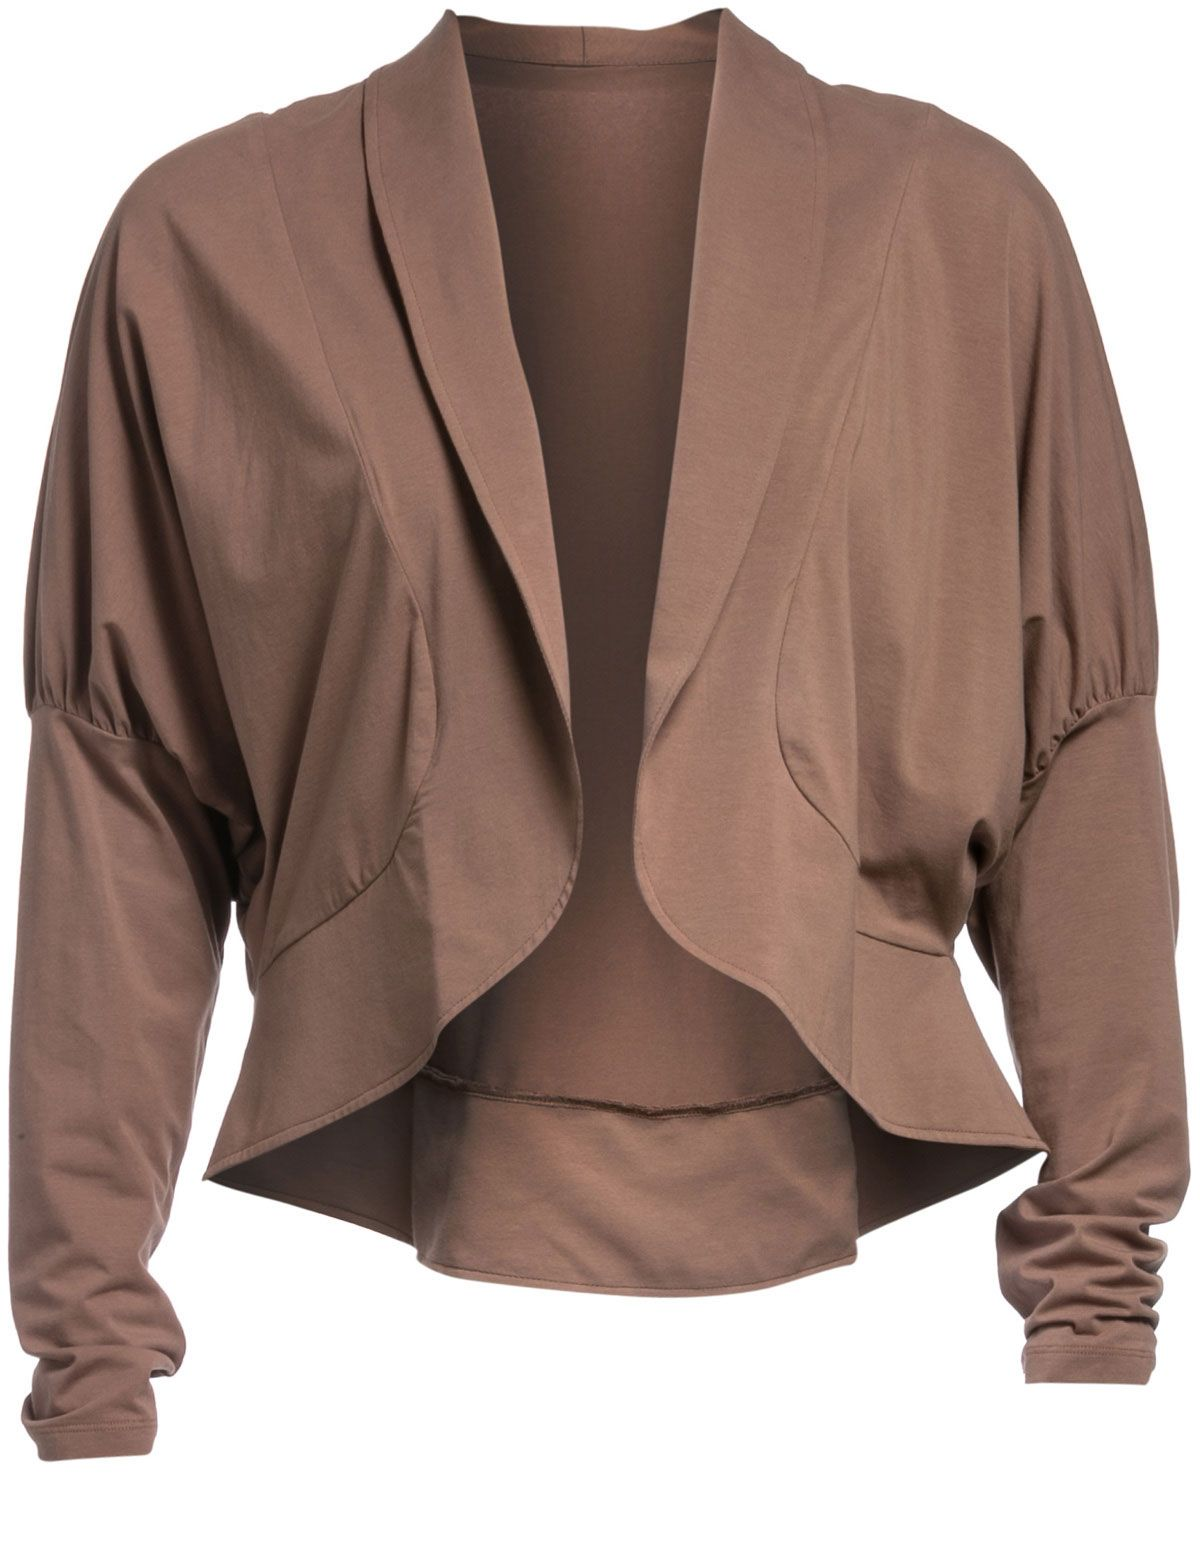 d8280995720c Short cotton jacket in Light-Brown designed by Isolde Roth to find in Category  Coats & Jackets at navabi.de